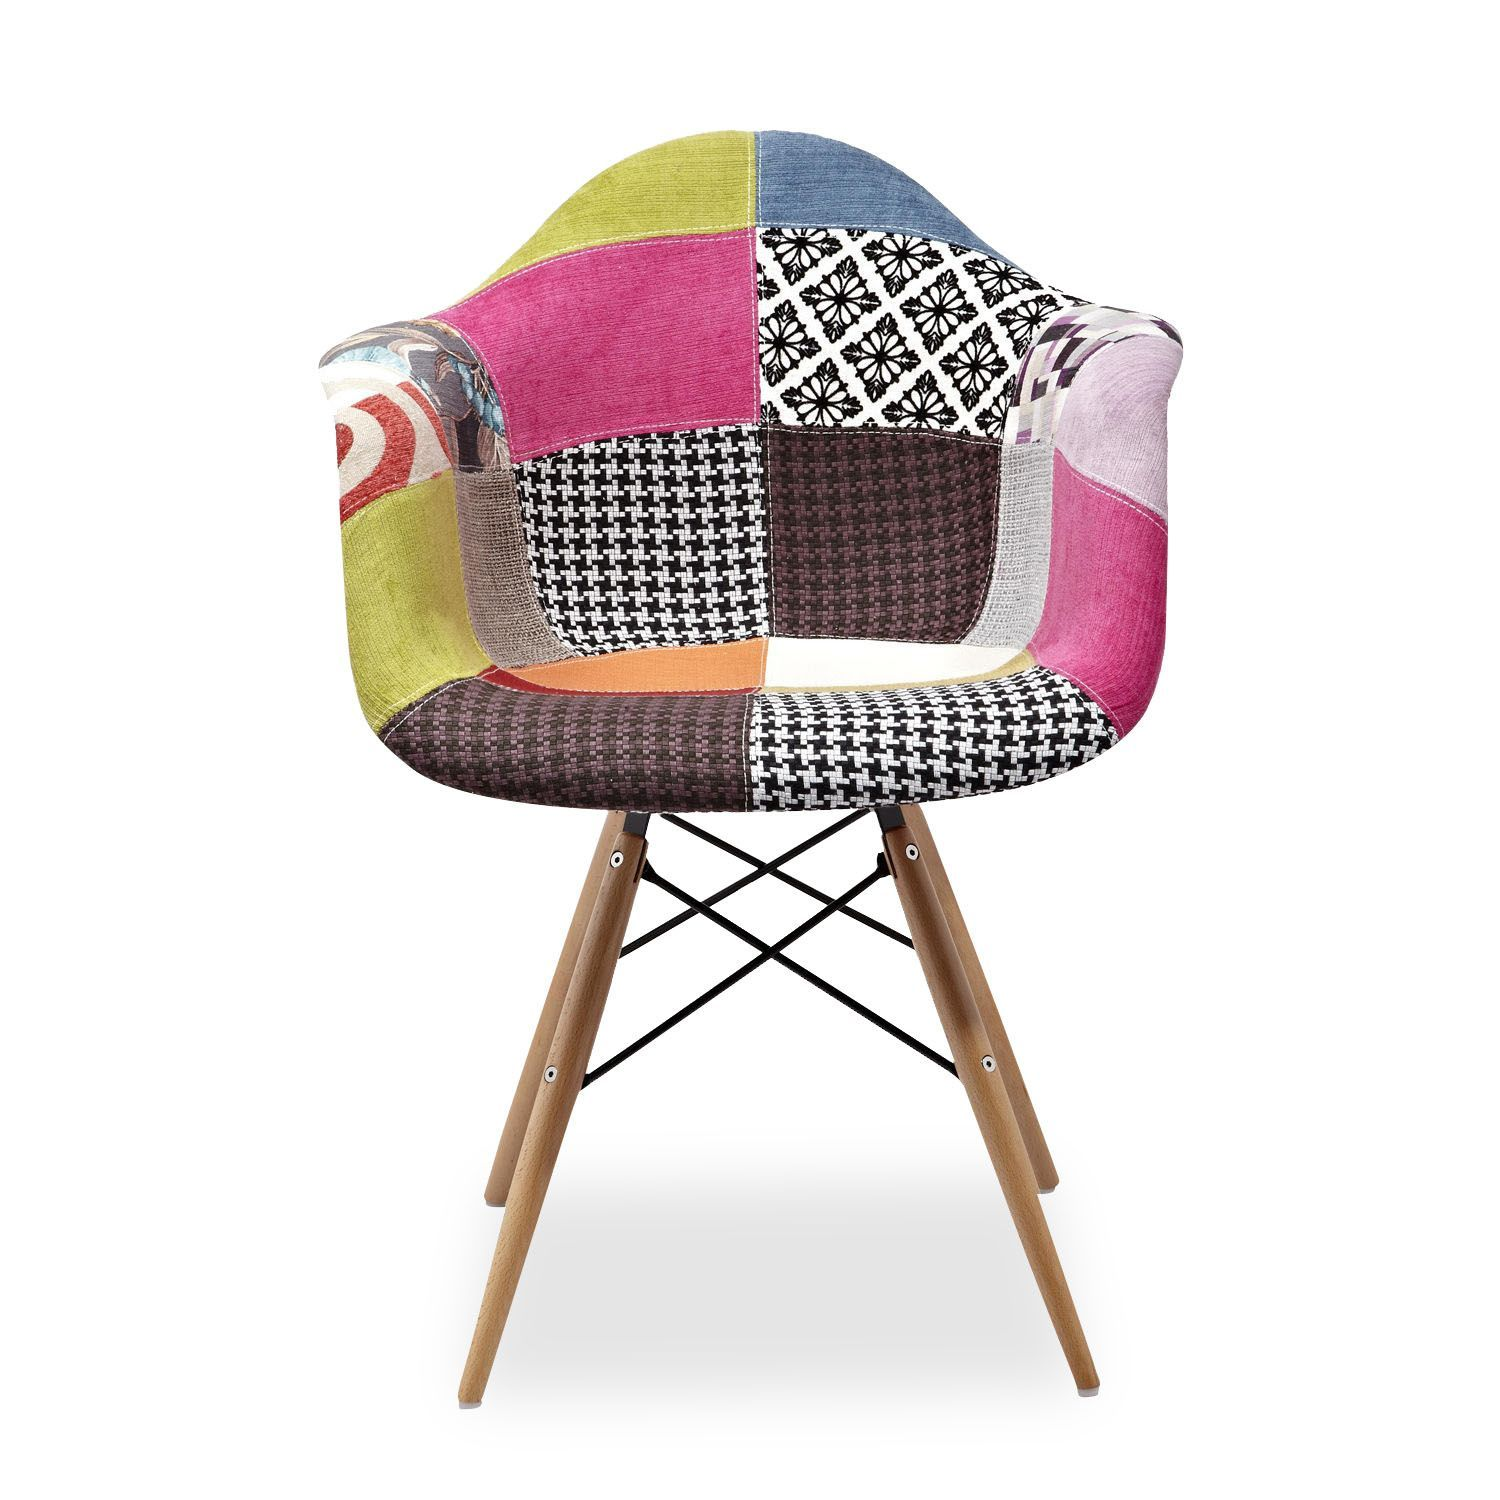 Silla wooden arms tapizado tela patchwork 2 sillas for Muebles patchwork